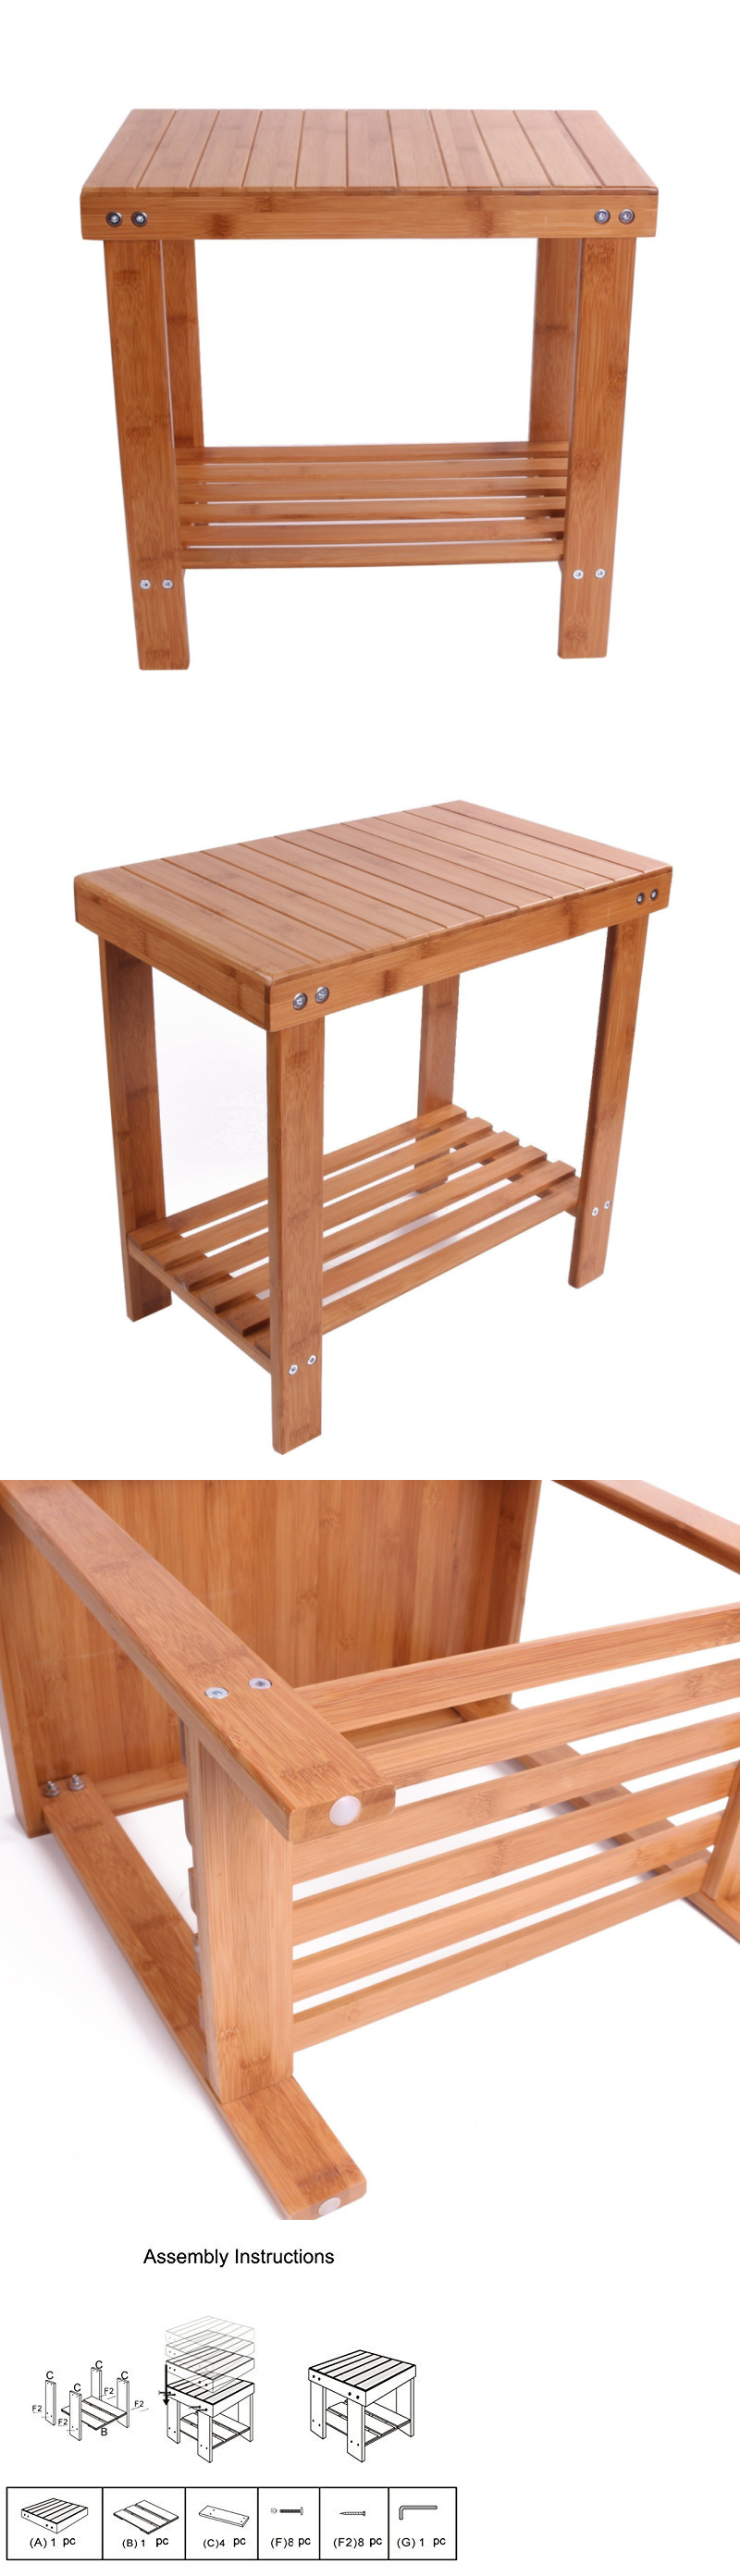 Shower and Bath Seats: Bamboo Shower Seat Bench Bathroom Spa Bath ...